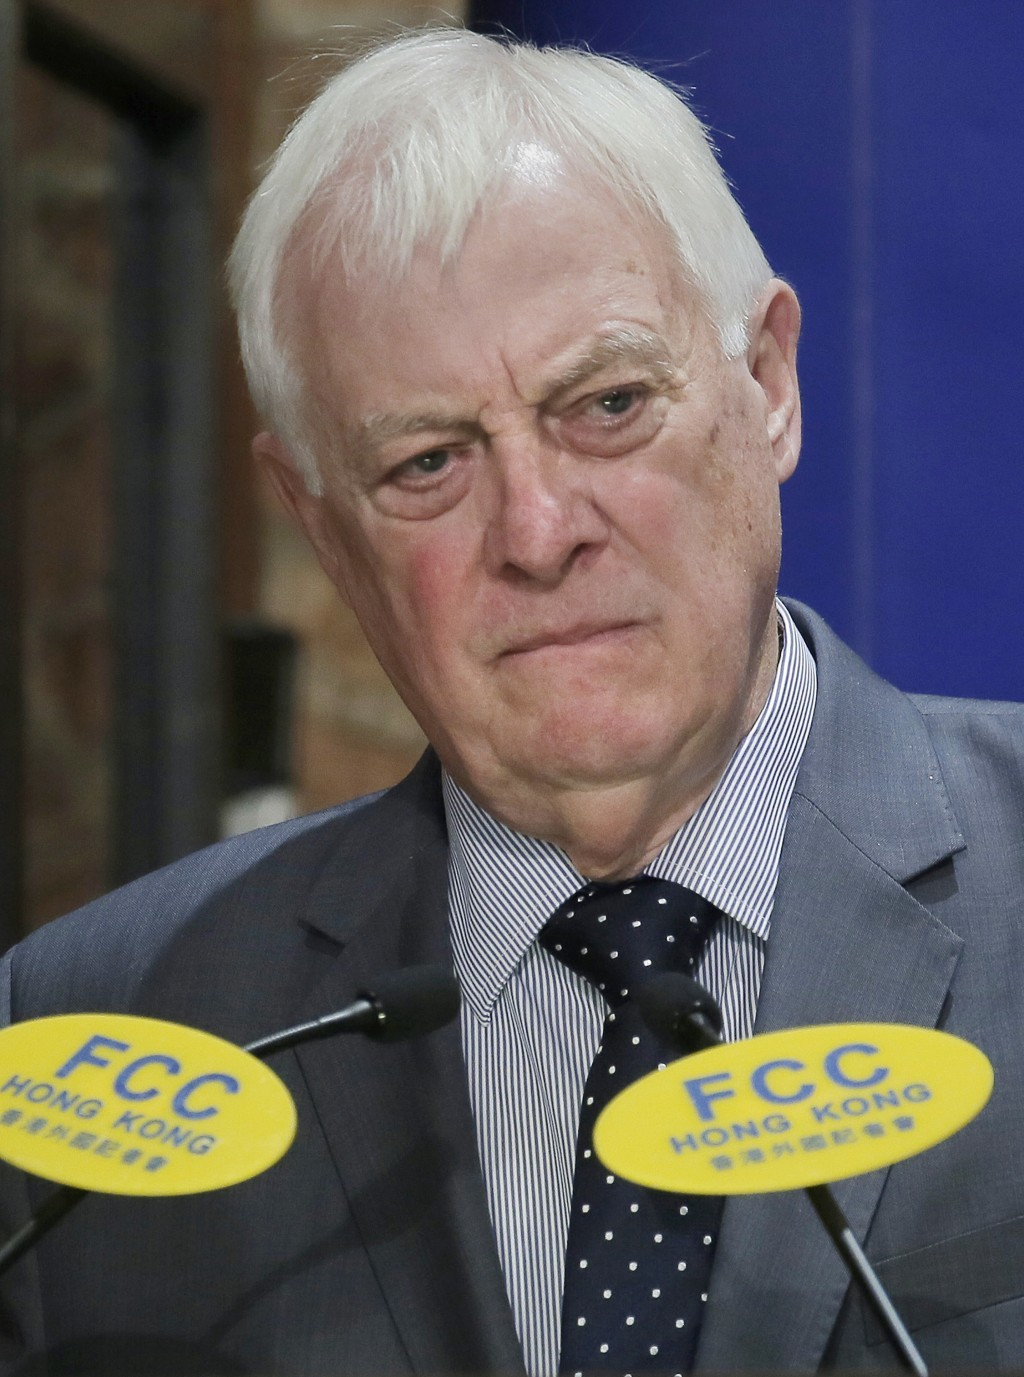 Chris Patten, Hong Kong's last British governor, listens to questions at The Foreign Correspondents' Club to promote his new book in Hong Kong, Tuesda...